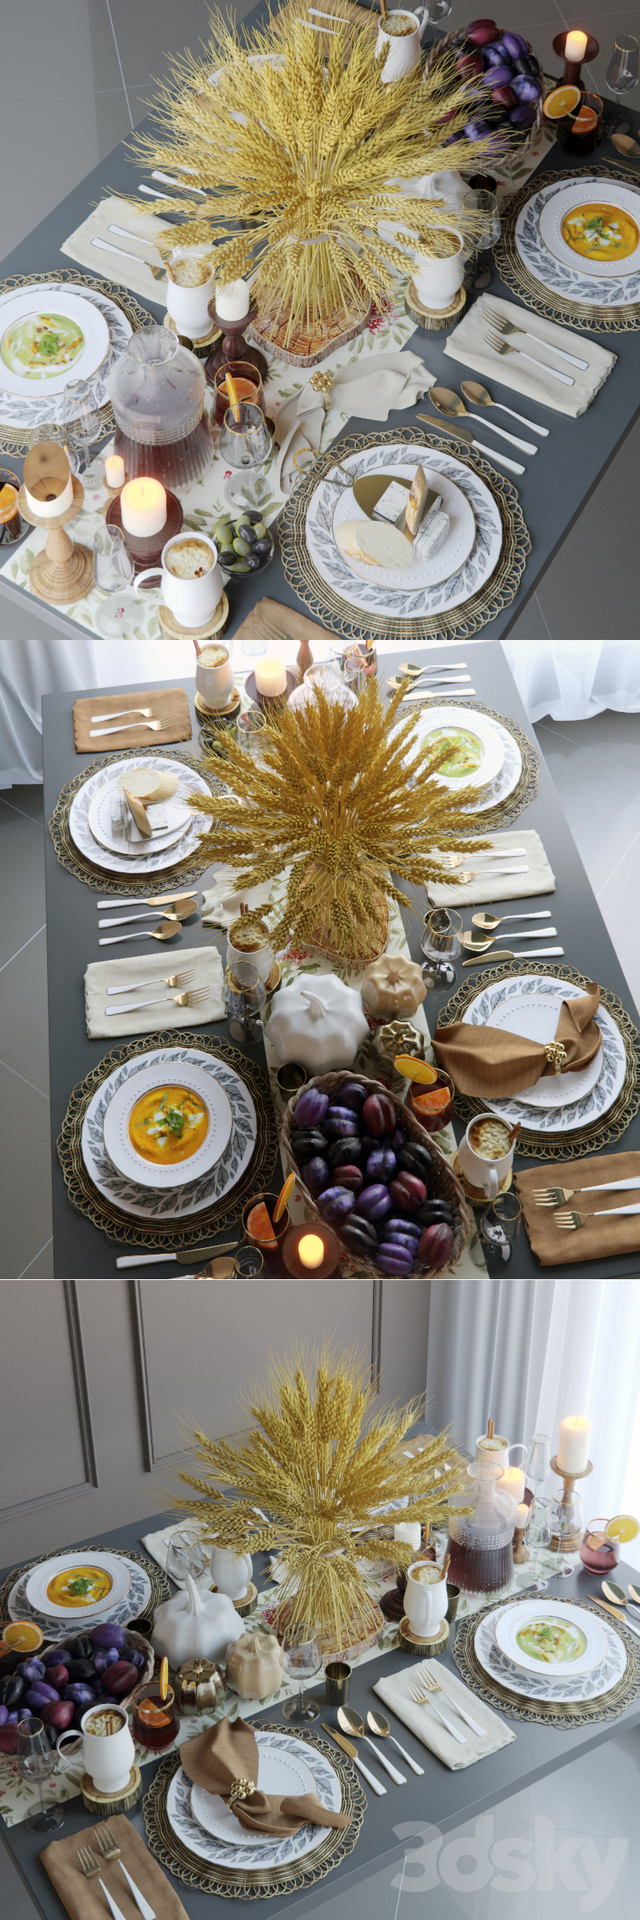 Table setting 19